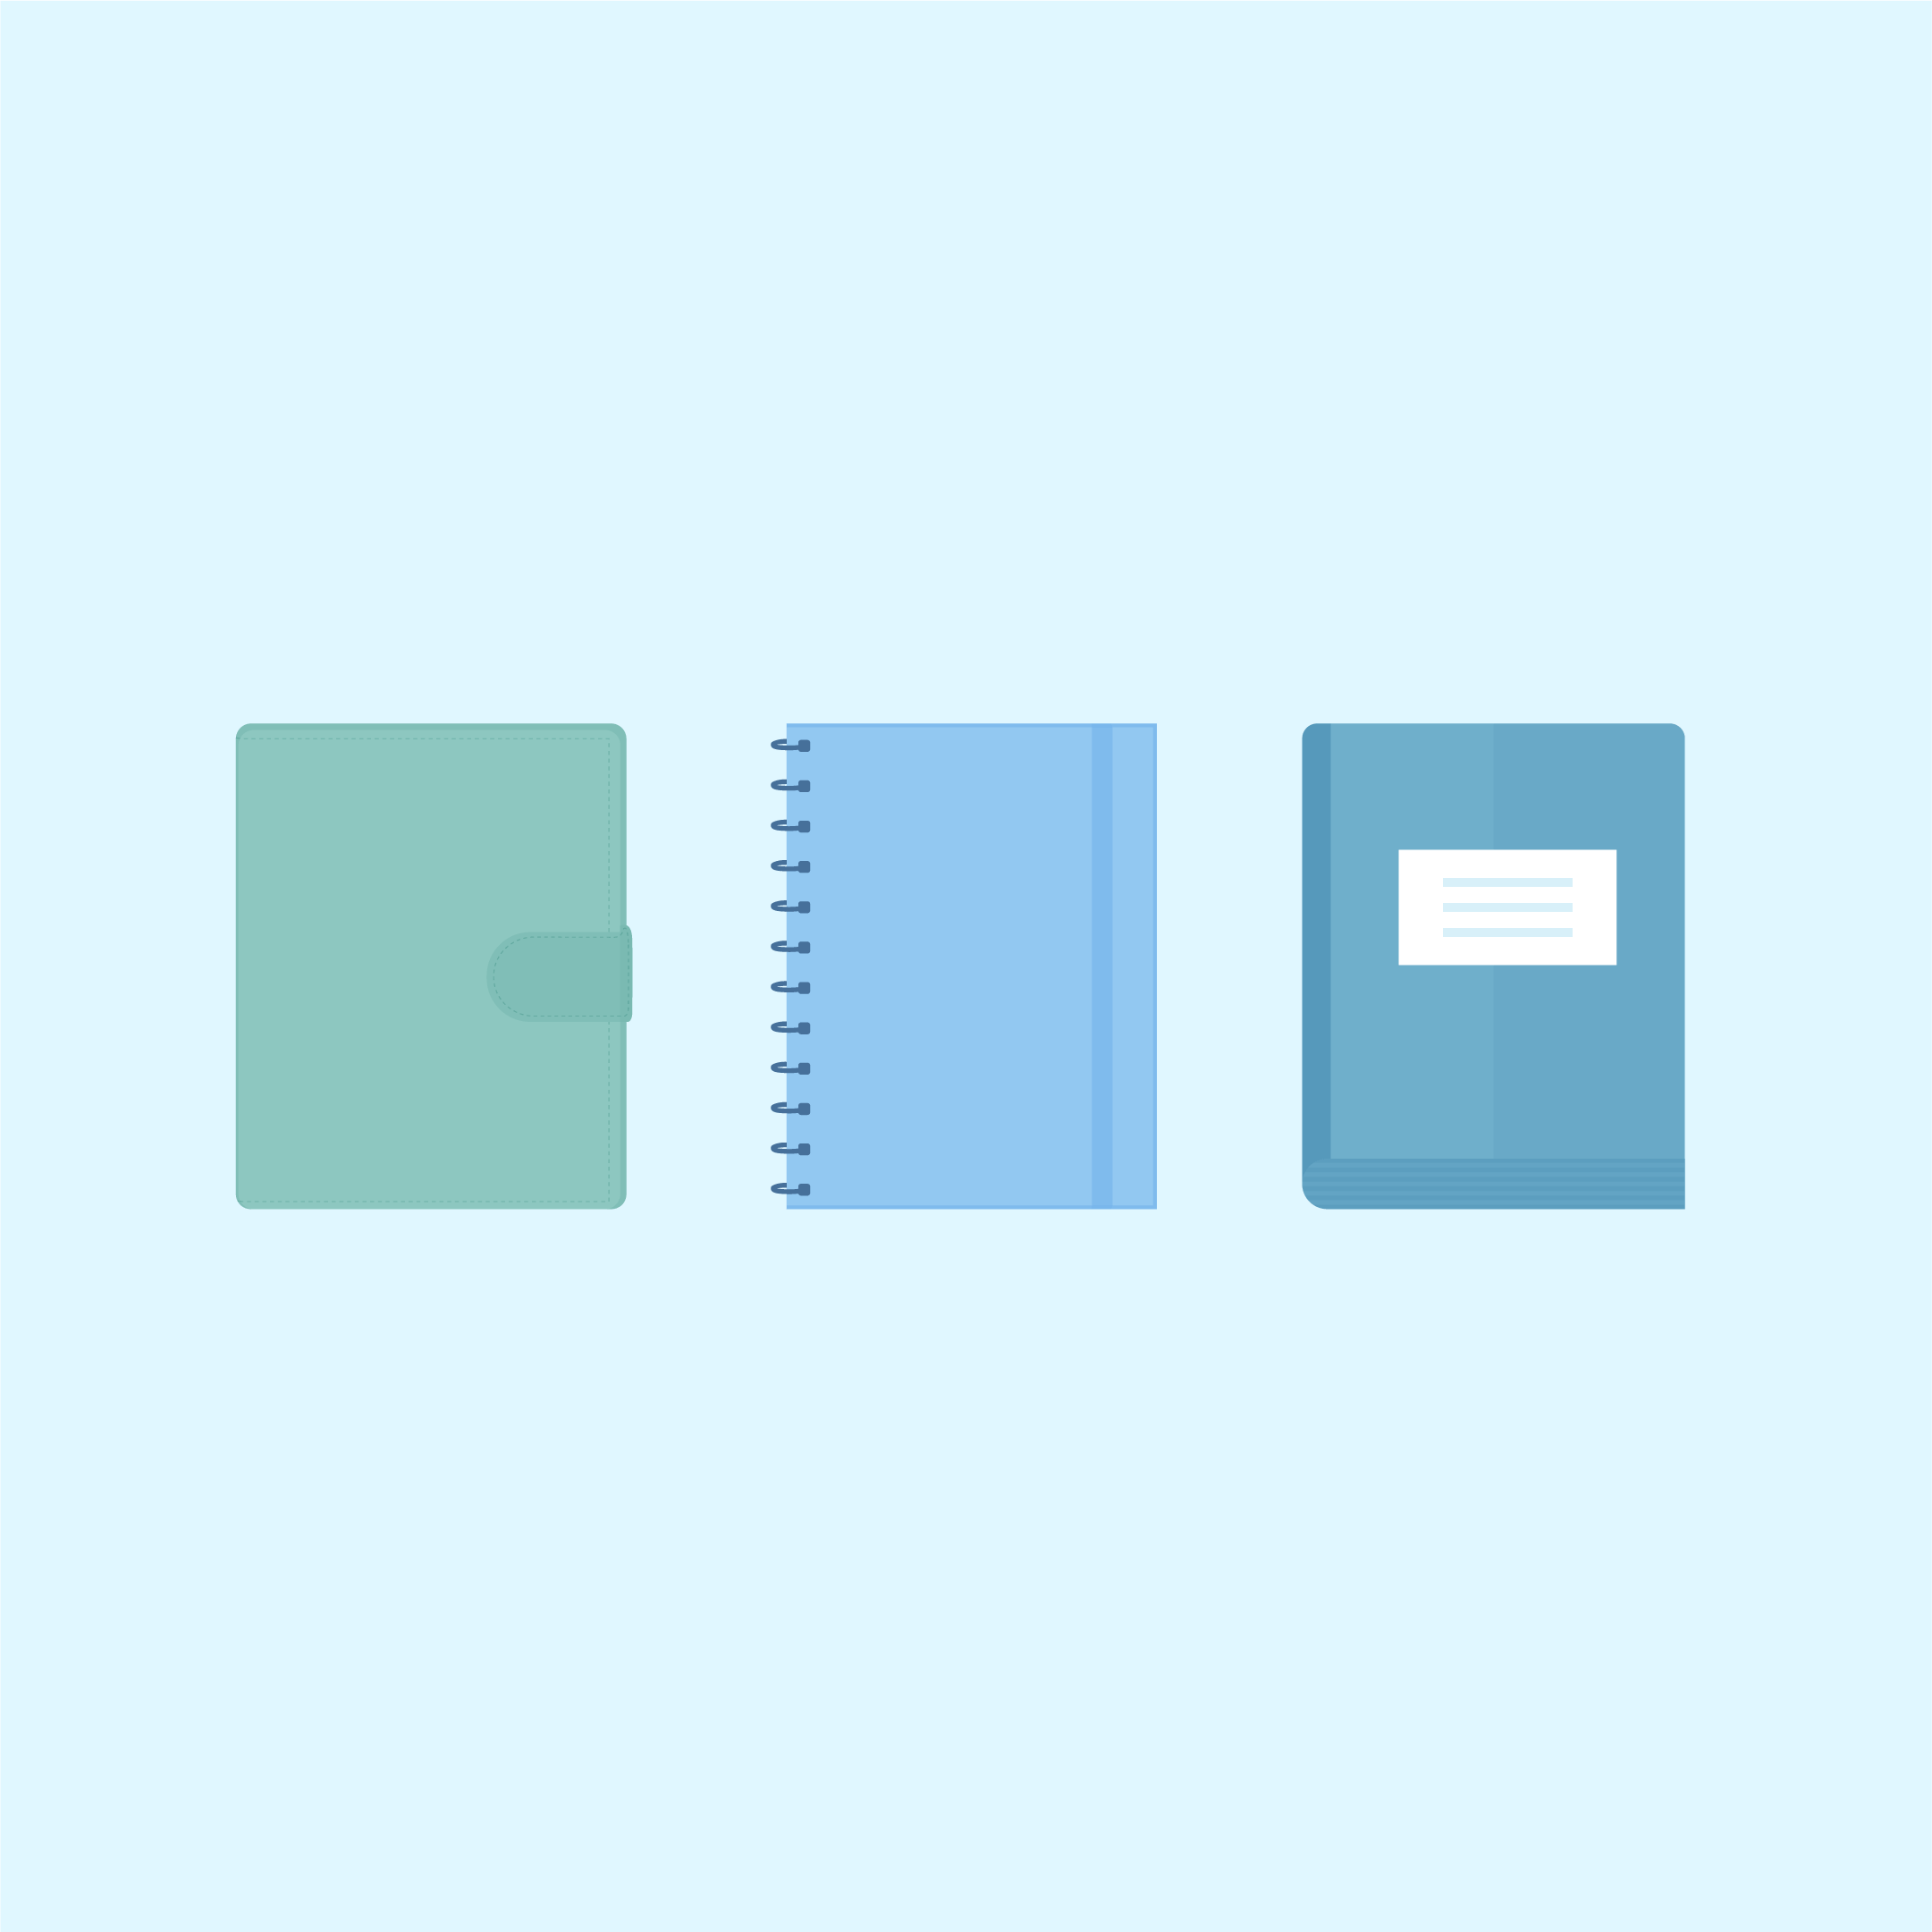 Vector illustration of three icons: mint binder-notebook, blue spiral notebook & blue book in flat design style